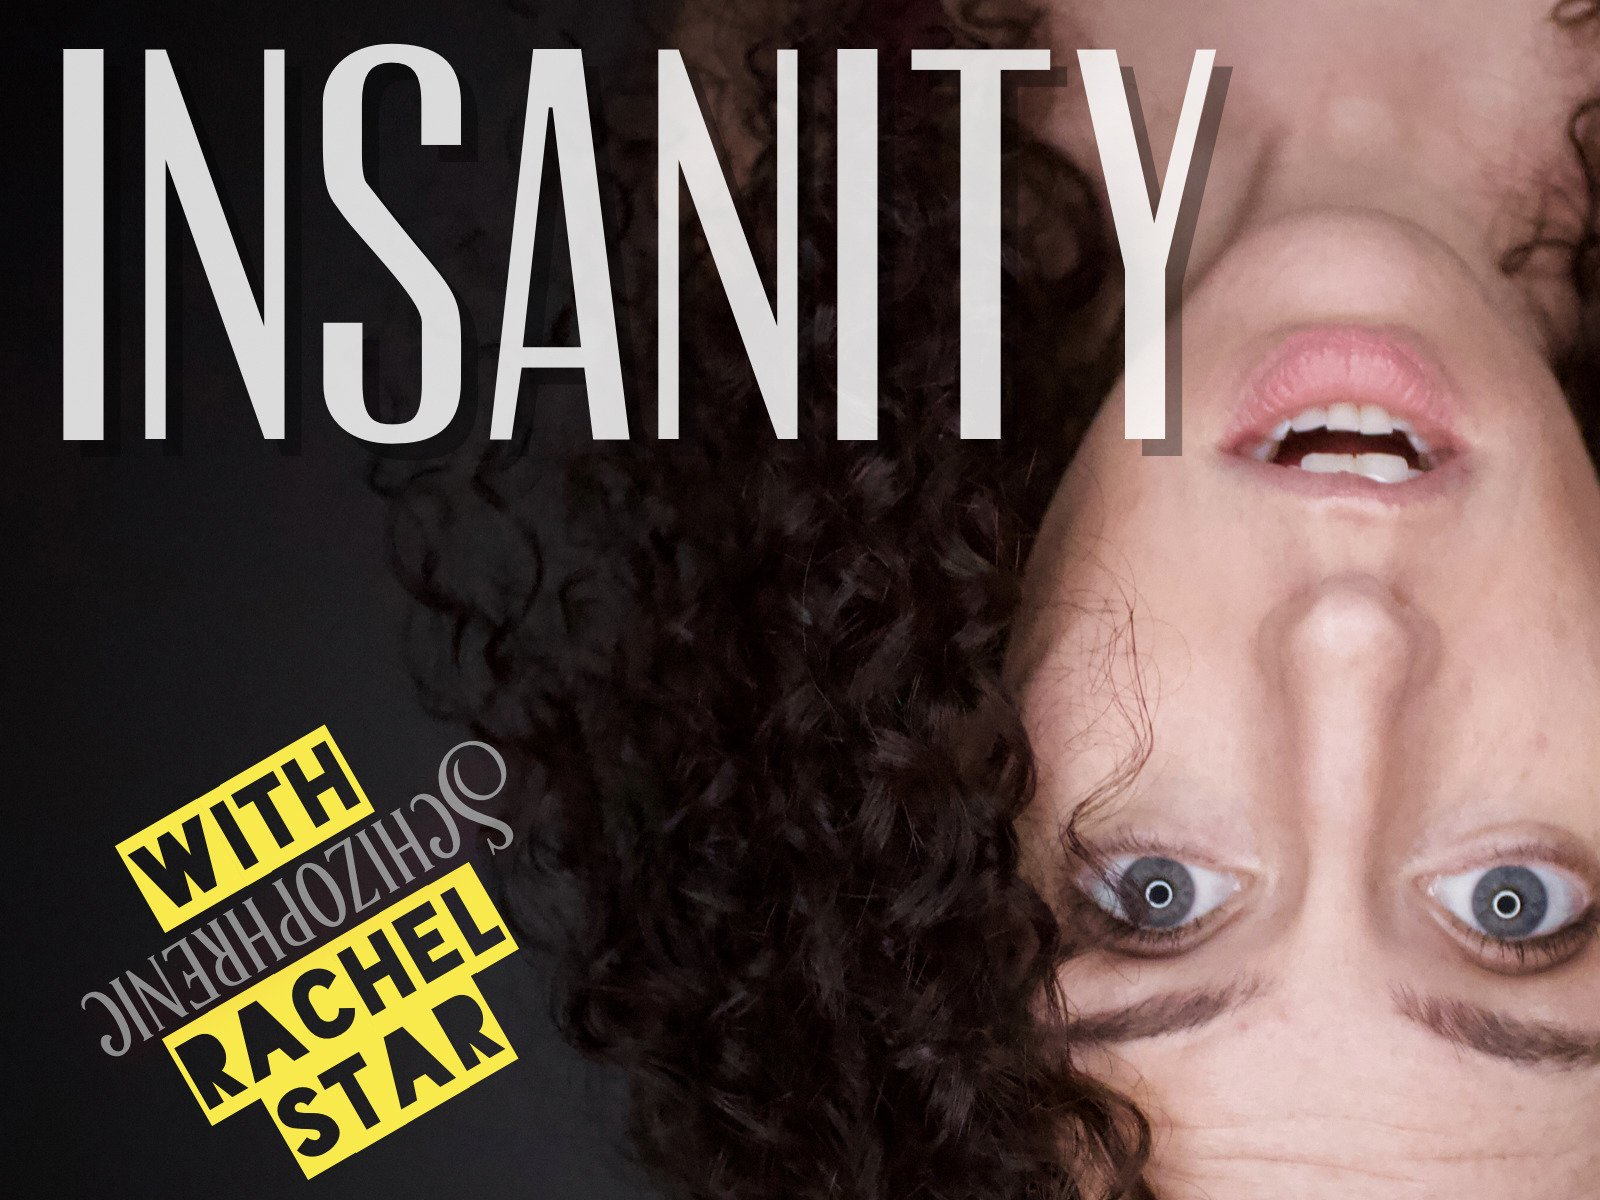 Clip: Insanity with Schizophrenic Rachel Star - Season 1